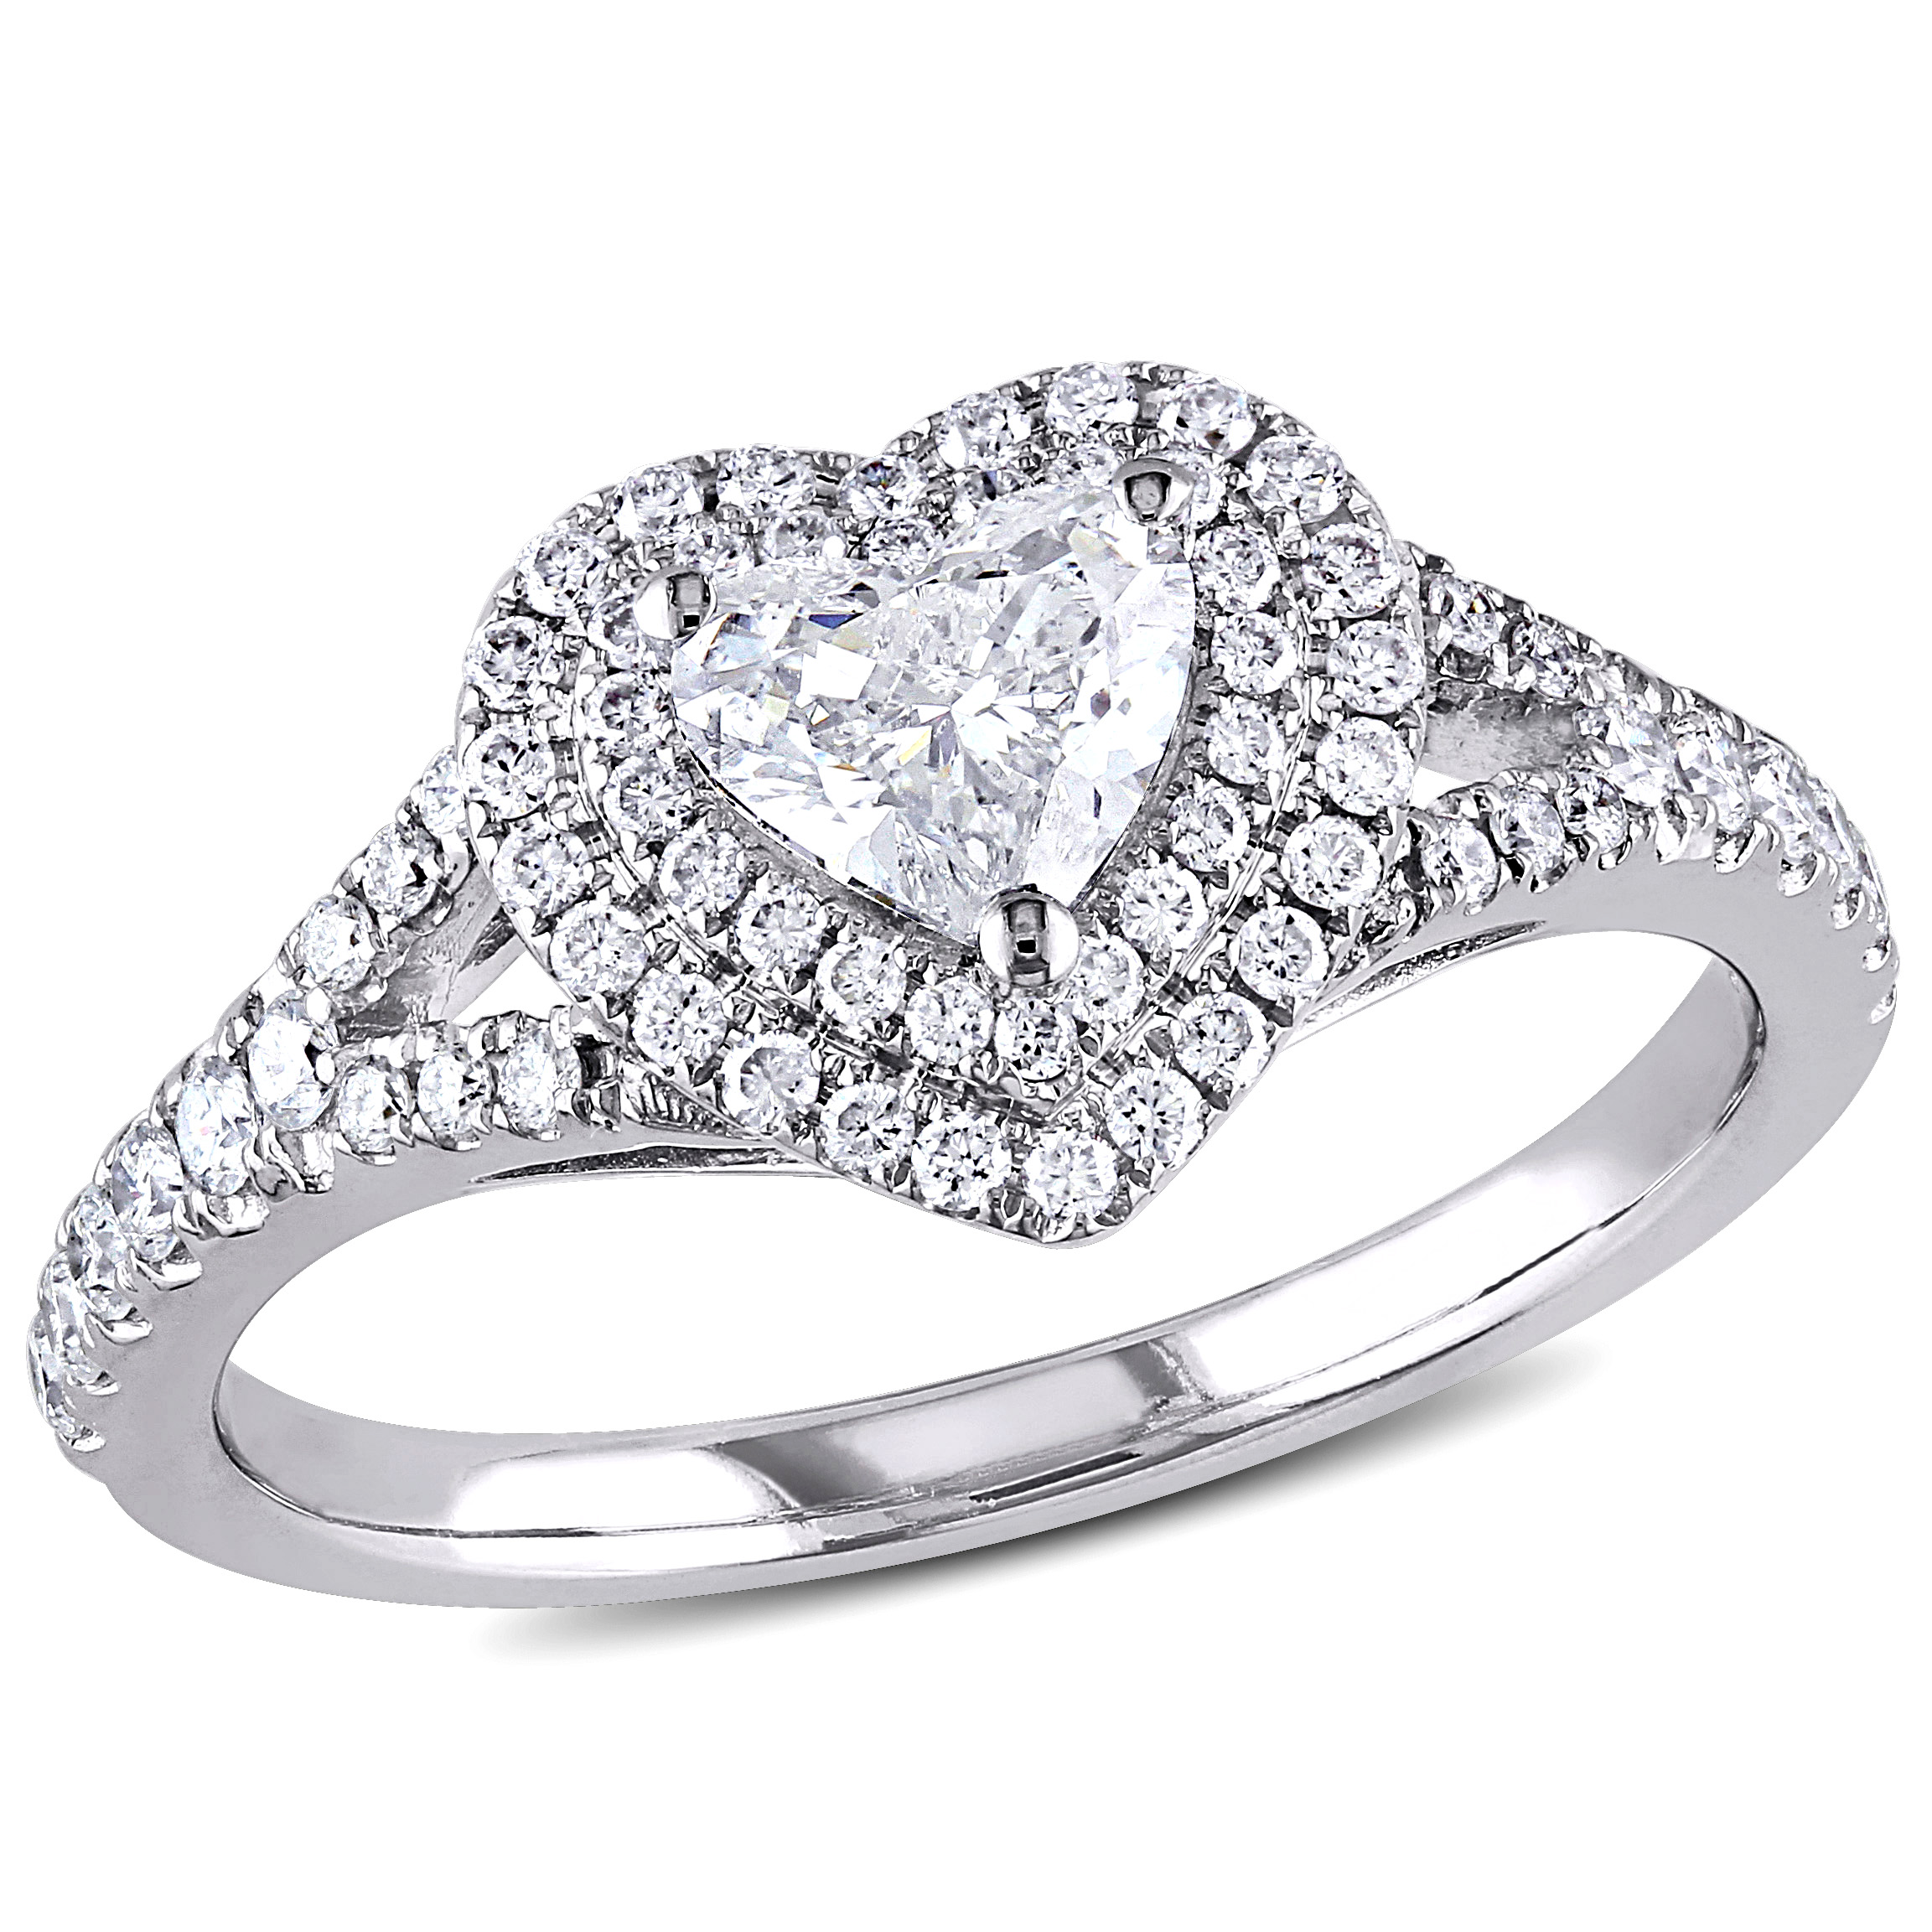 shaped without popular regarding wedding pear of weddingbee ering carat view rings halo engagement